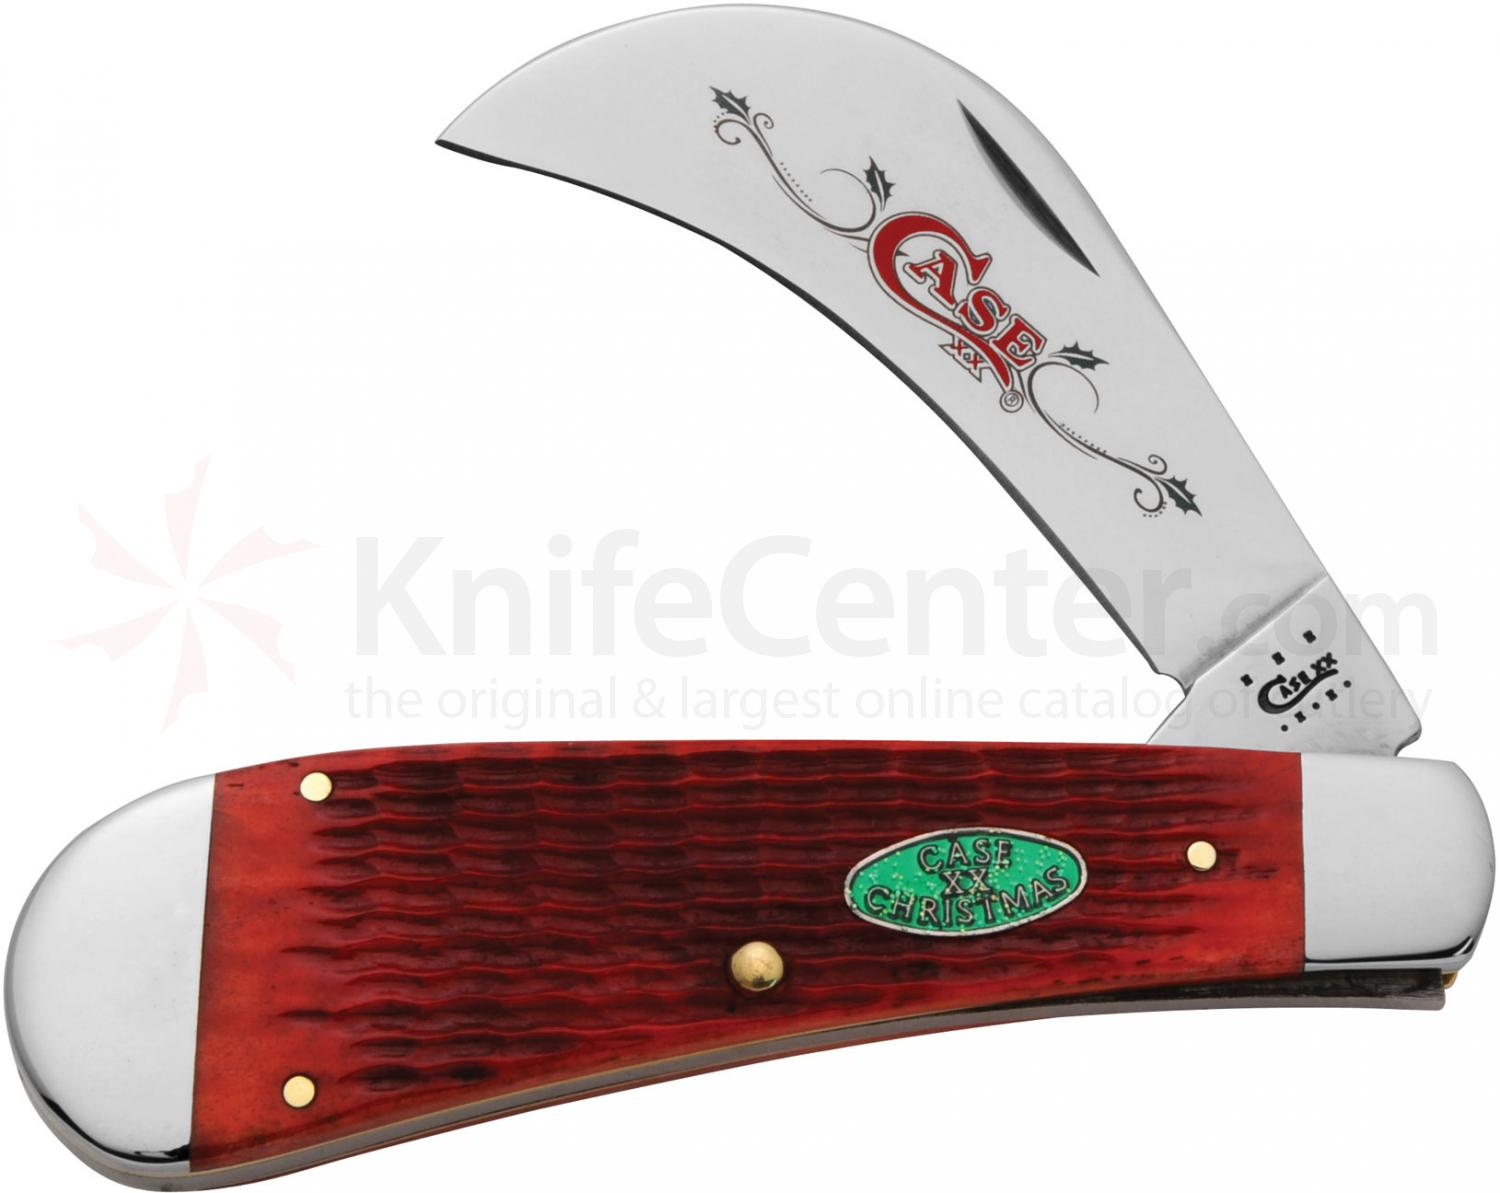 Case XX Christmas Shield Dark Red Jigged Bone Hawkbill Pruner 4 inch Closed (61011 SS)